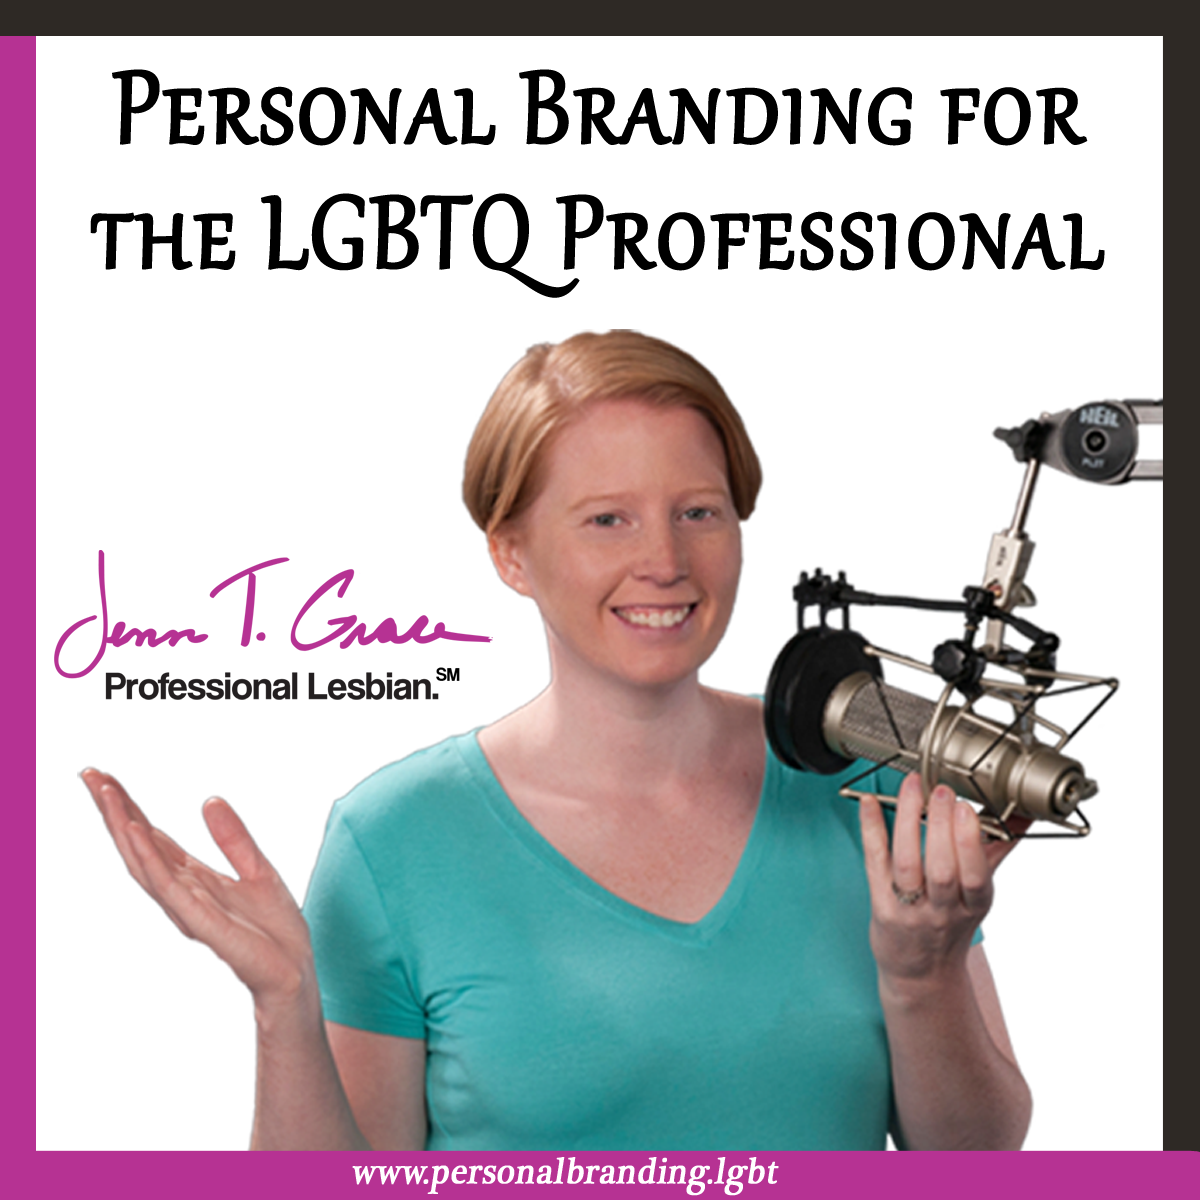 Personal Branding for the LGBTQ Professional - #82: How to Impact 1 Million LGBT People [Podcast]